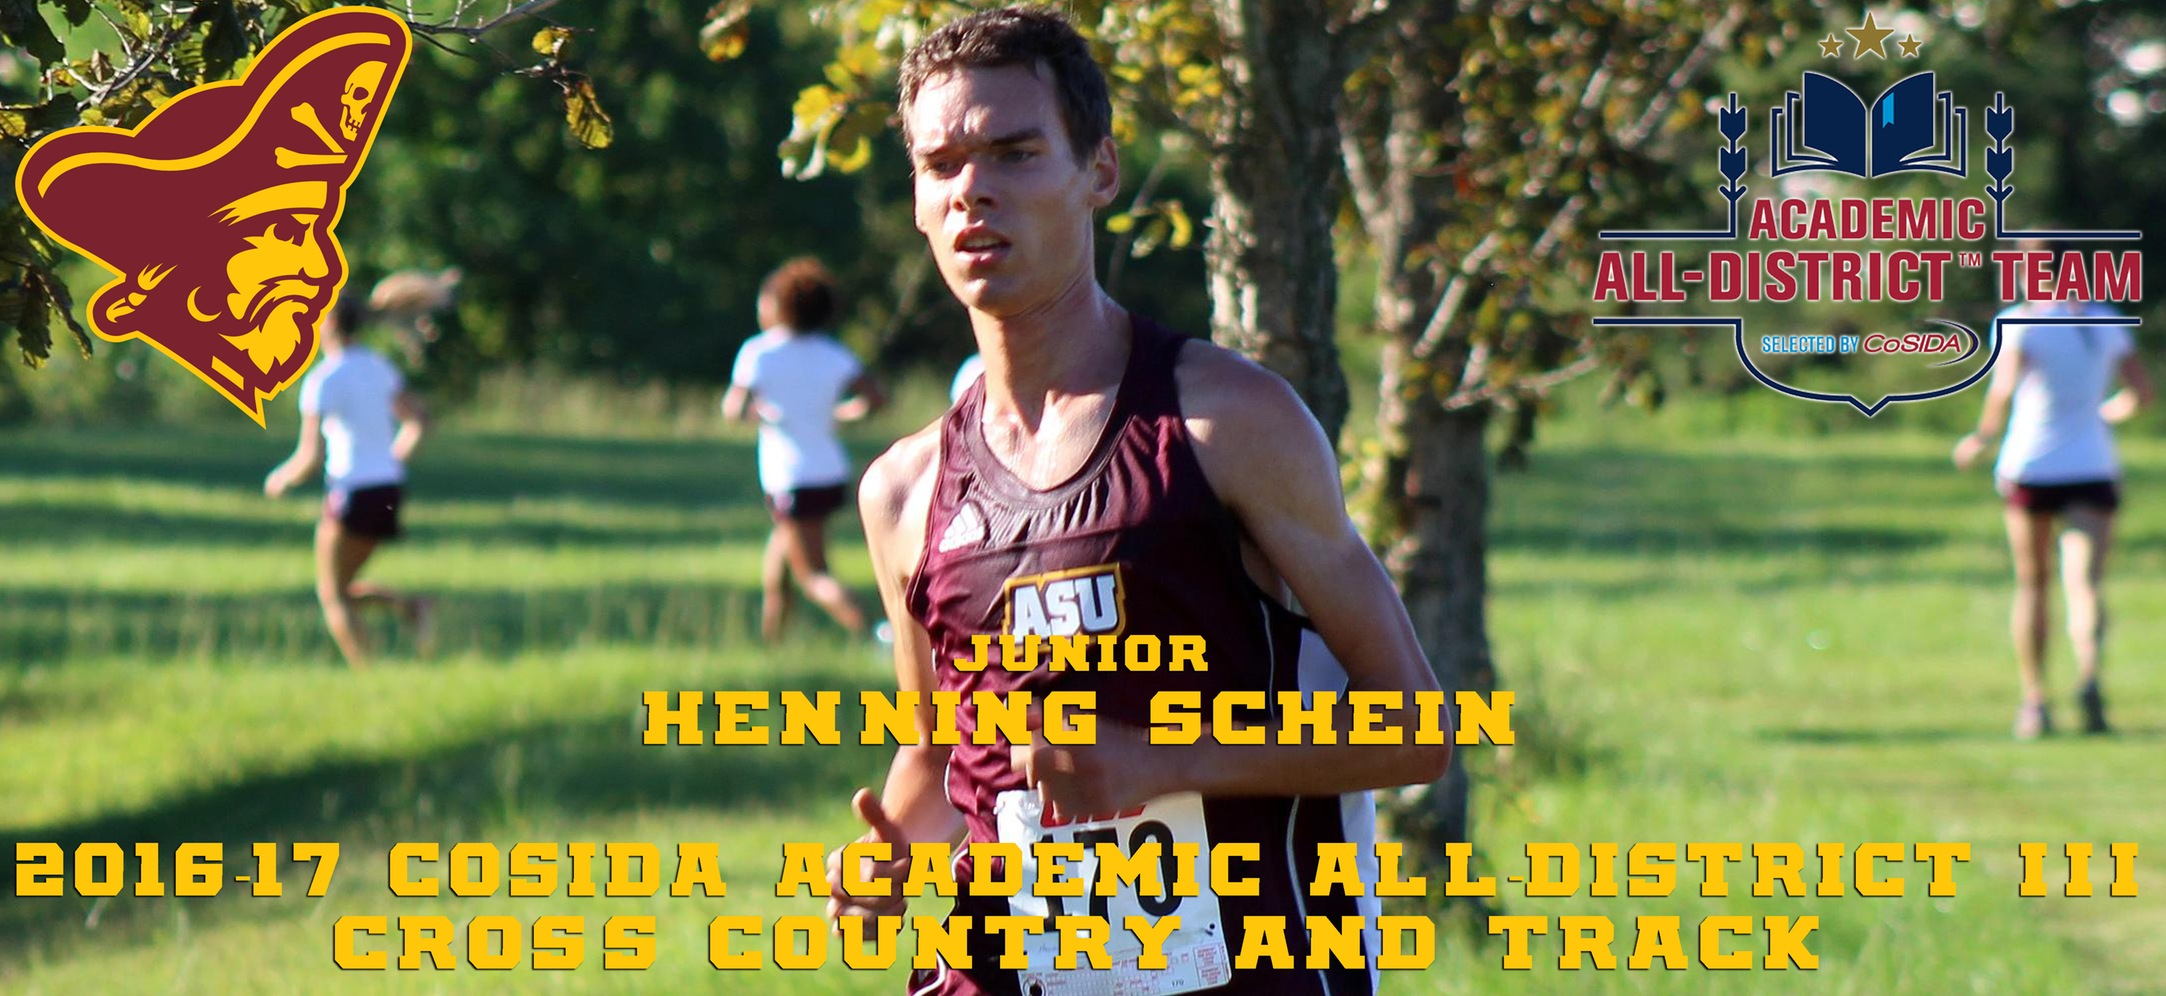 Henning Schein Earns CoSIDA Academic All-District III Cross Country/Track Honors